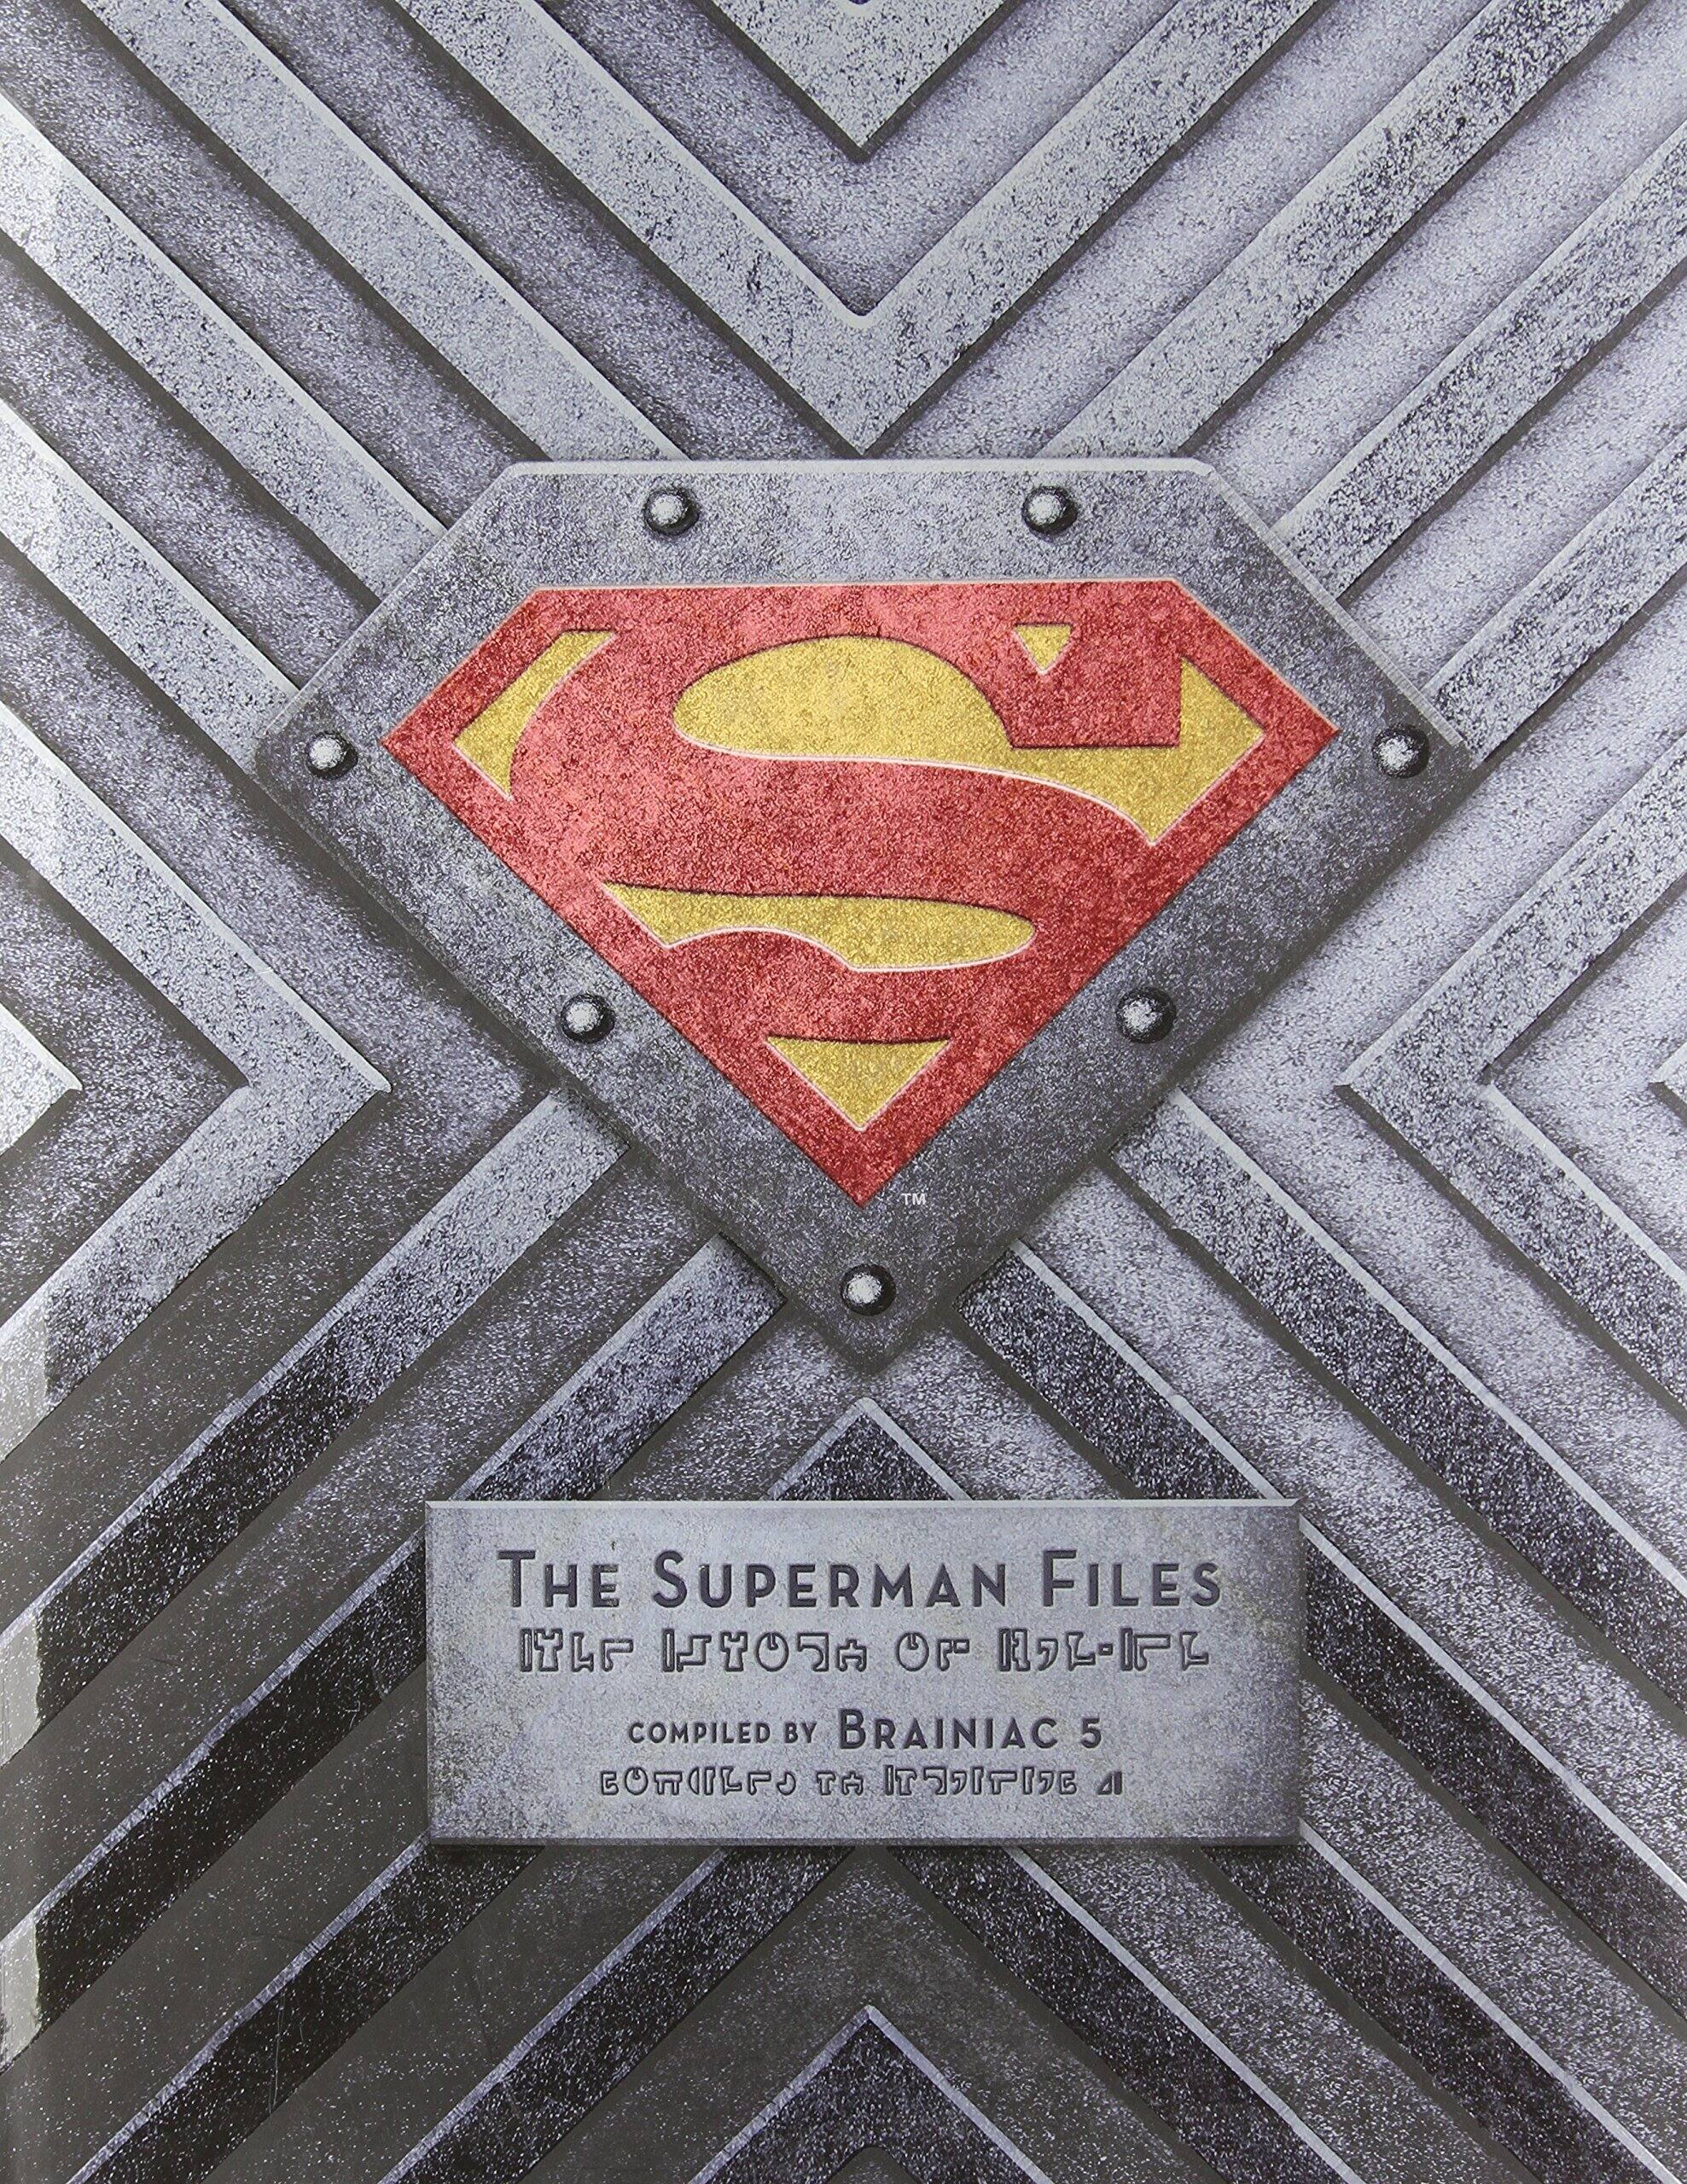 Superman Files Hardcover $5.73 Lowest Price on Amazon.com